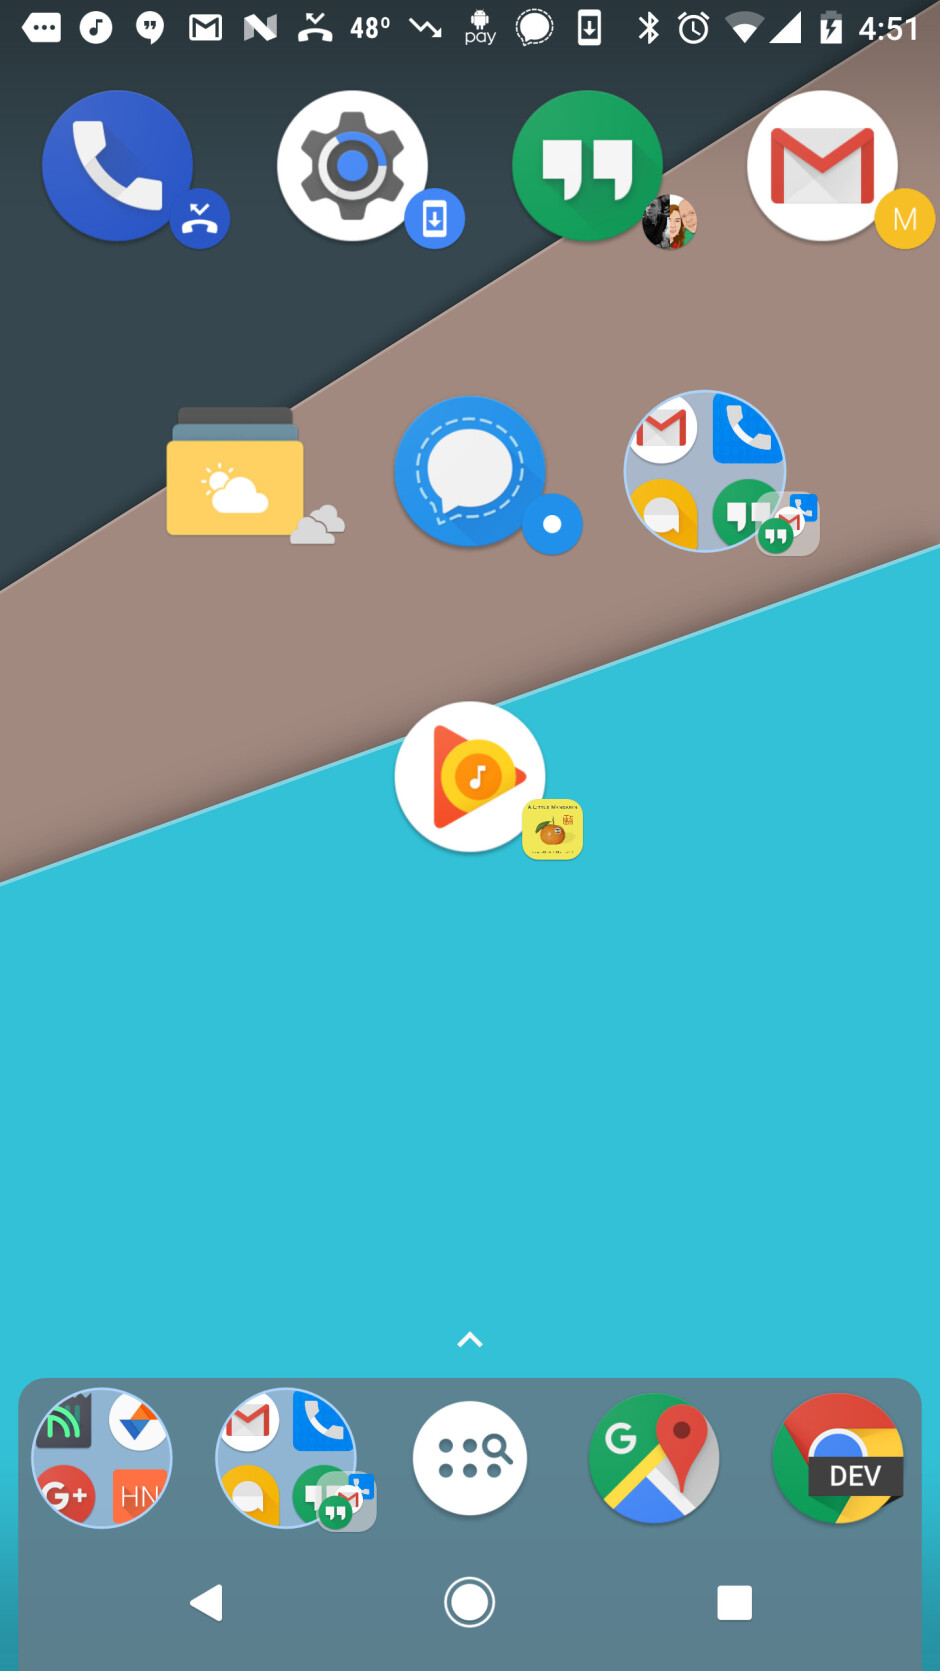 Nova Launcher 5.1 (beta) released with Dynamic Badges, small improvements